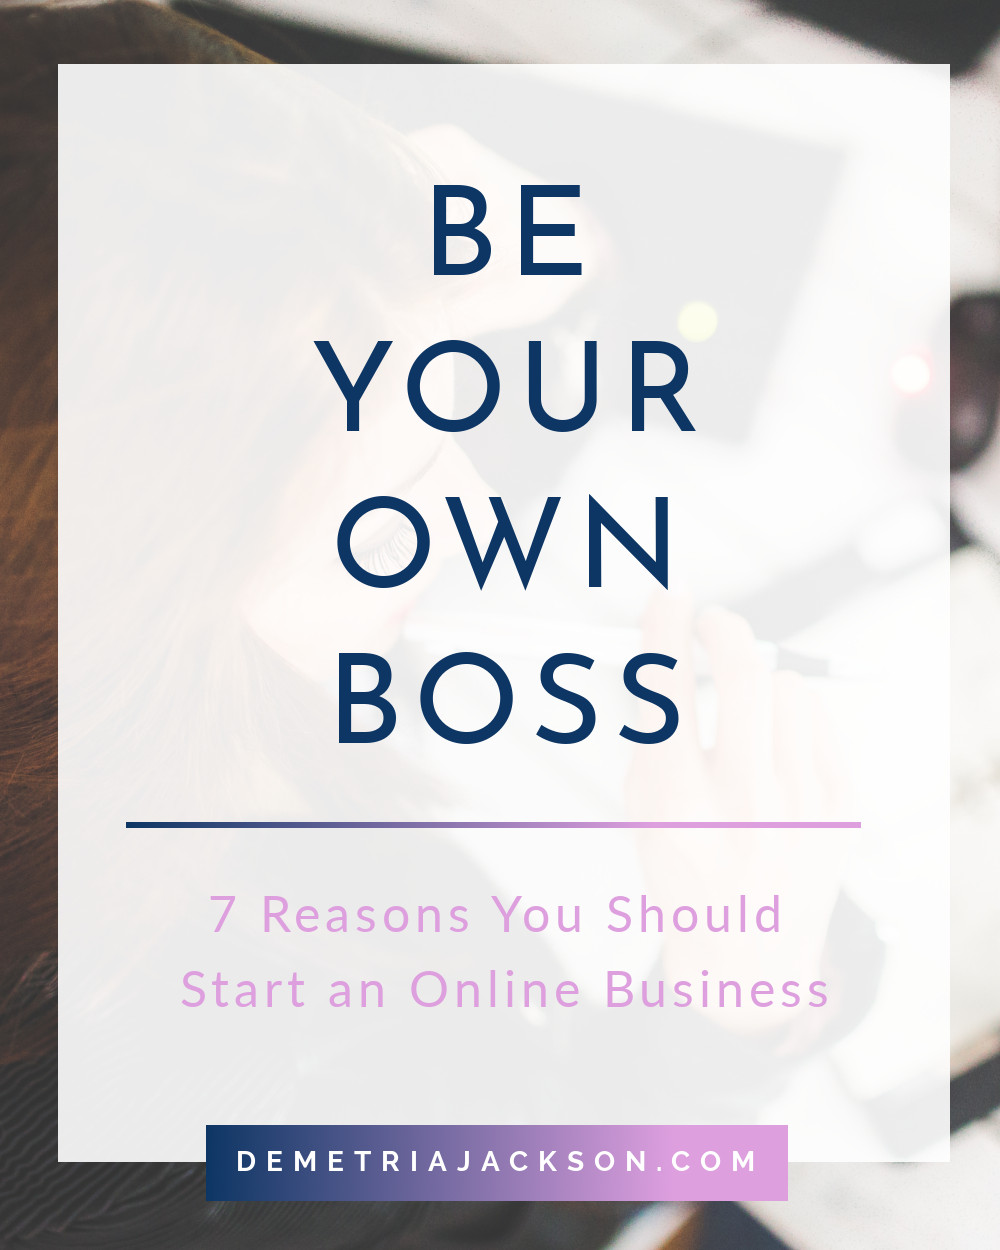 blog-thumbnail-be-your-own-boss.jpeg